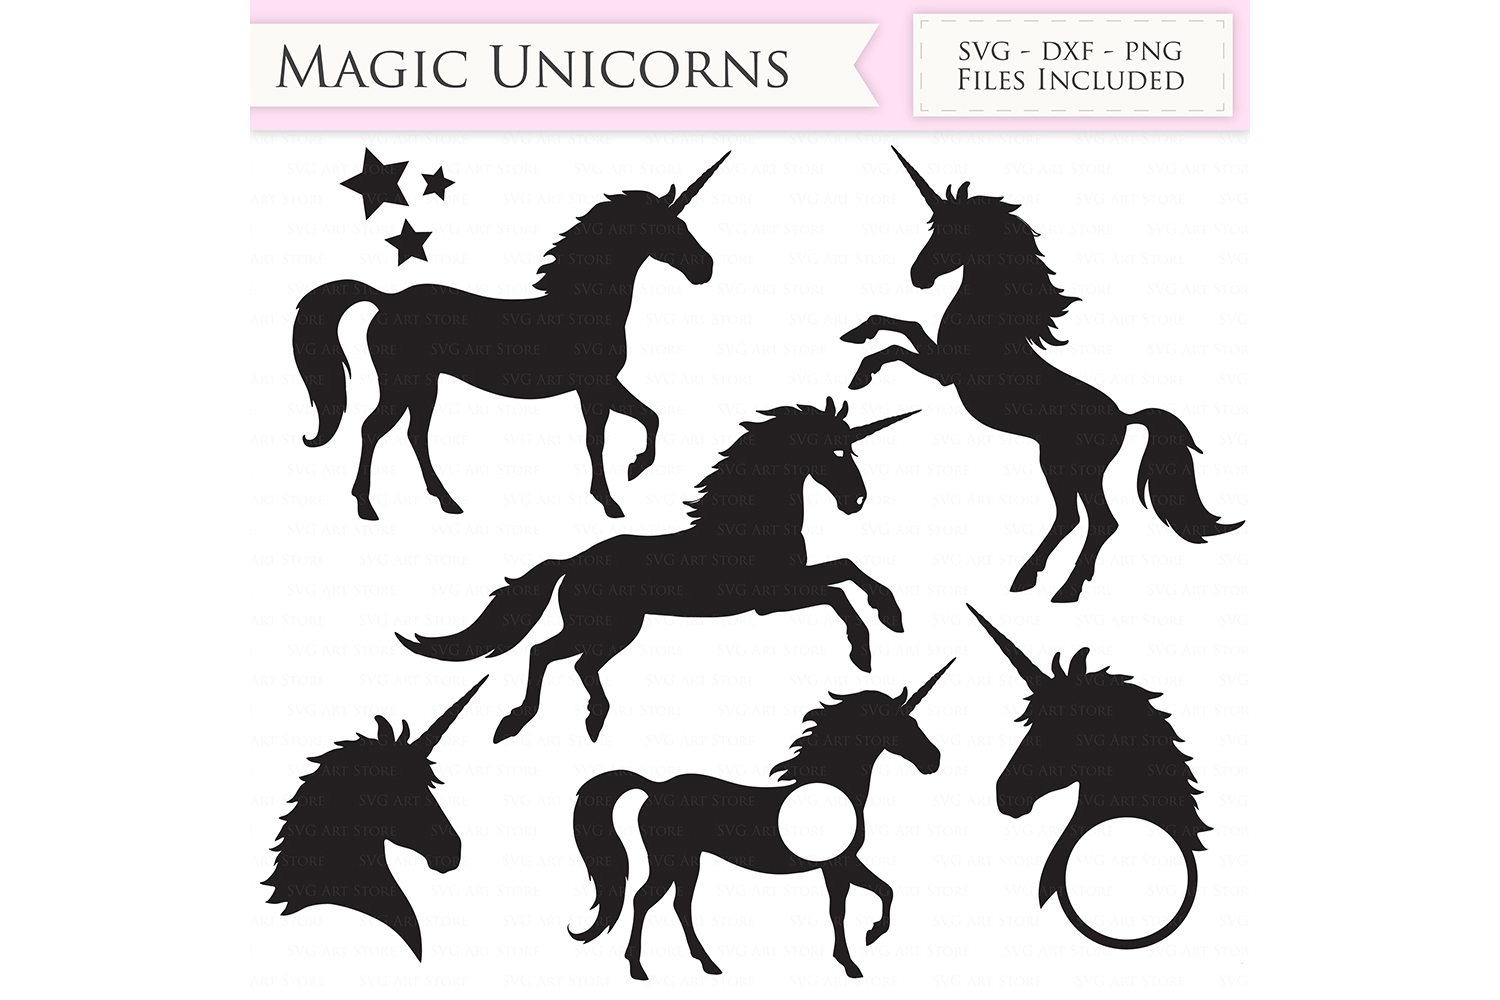 Magic Unicorns SVG Files - Jumping Unicorns, Unicorn head monogram cut files for Cricut and Silhouette - SVG, dxf, png, jpg files Included example image 1